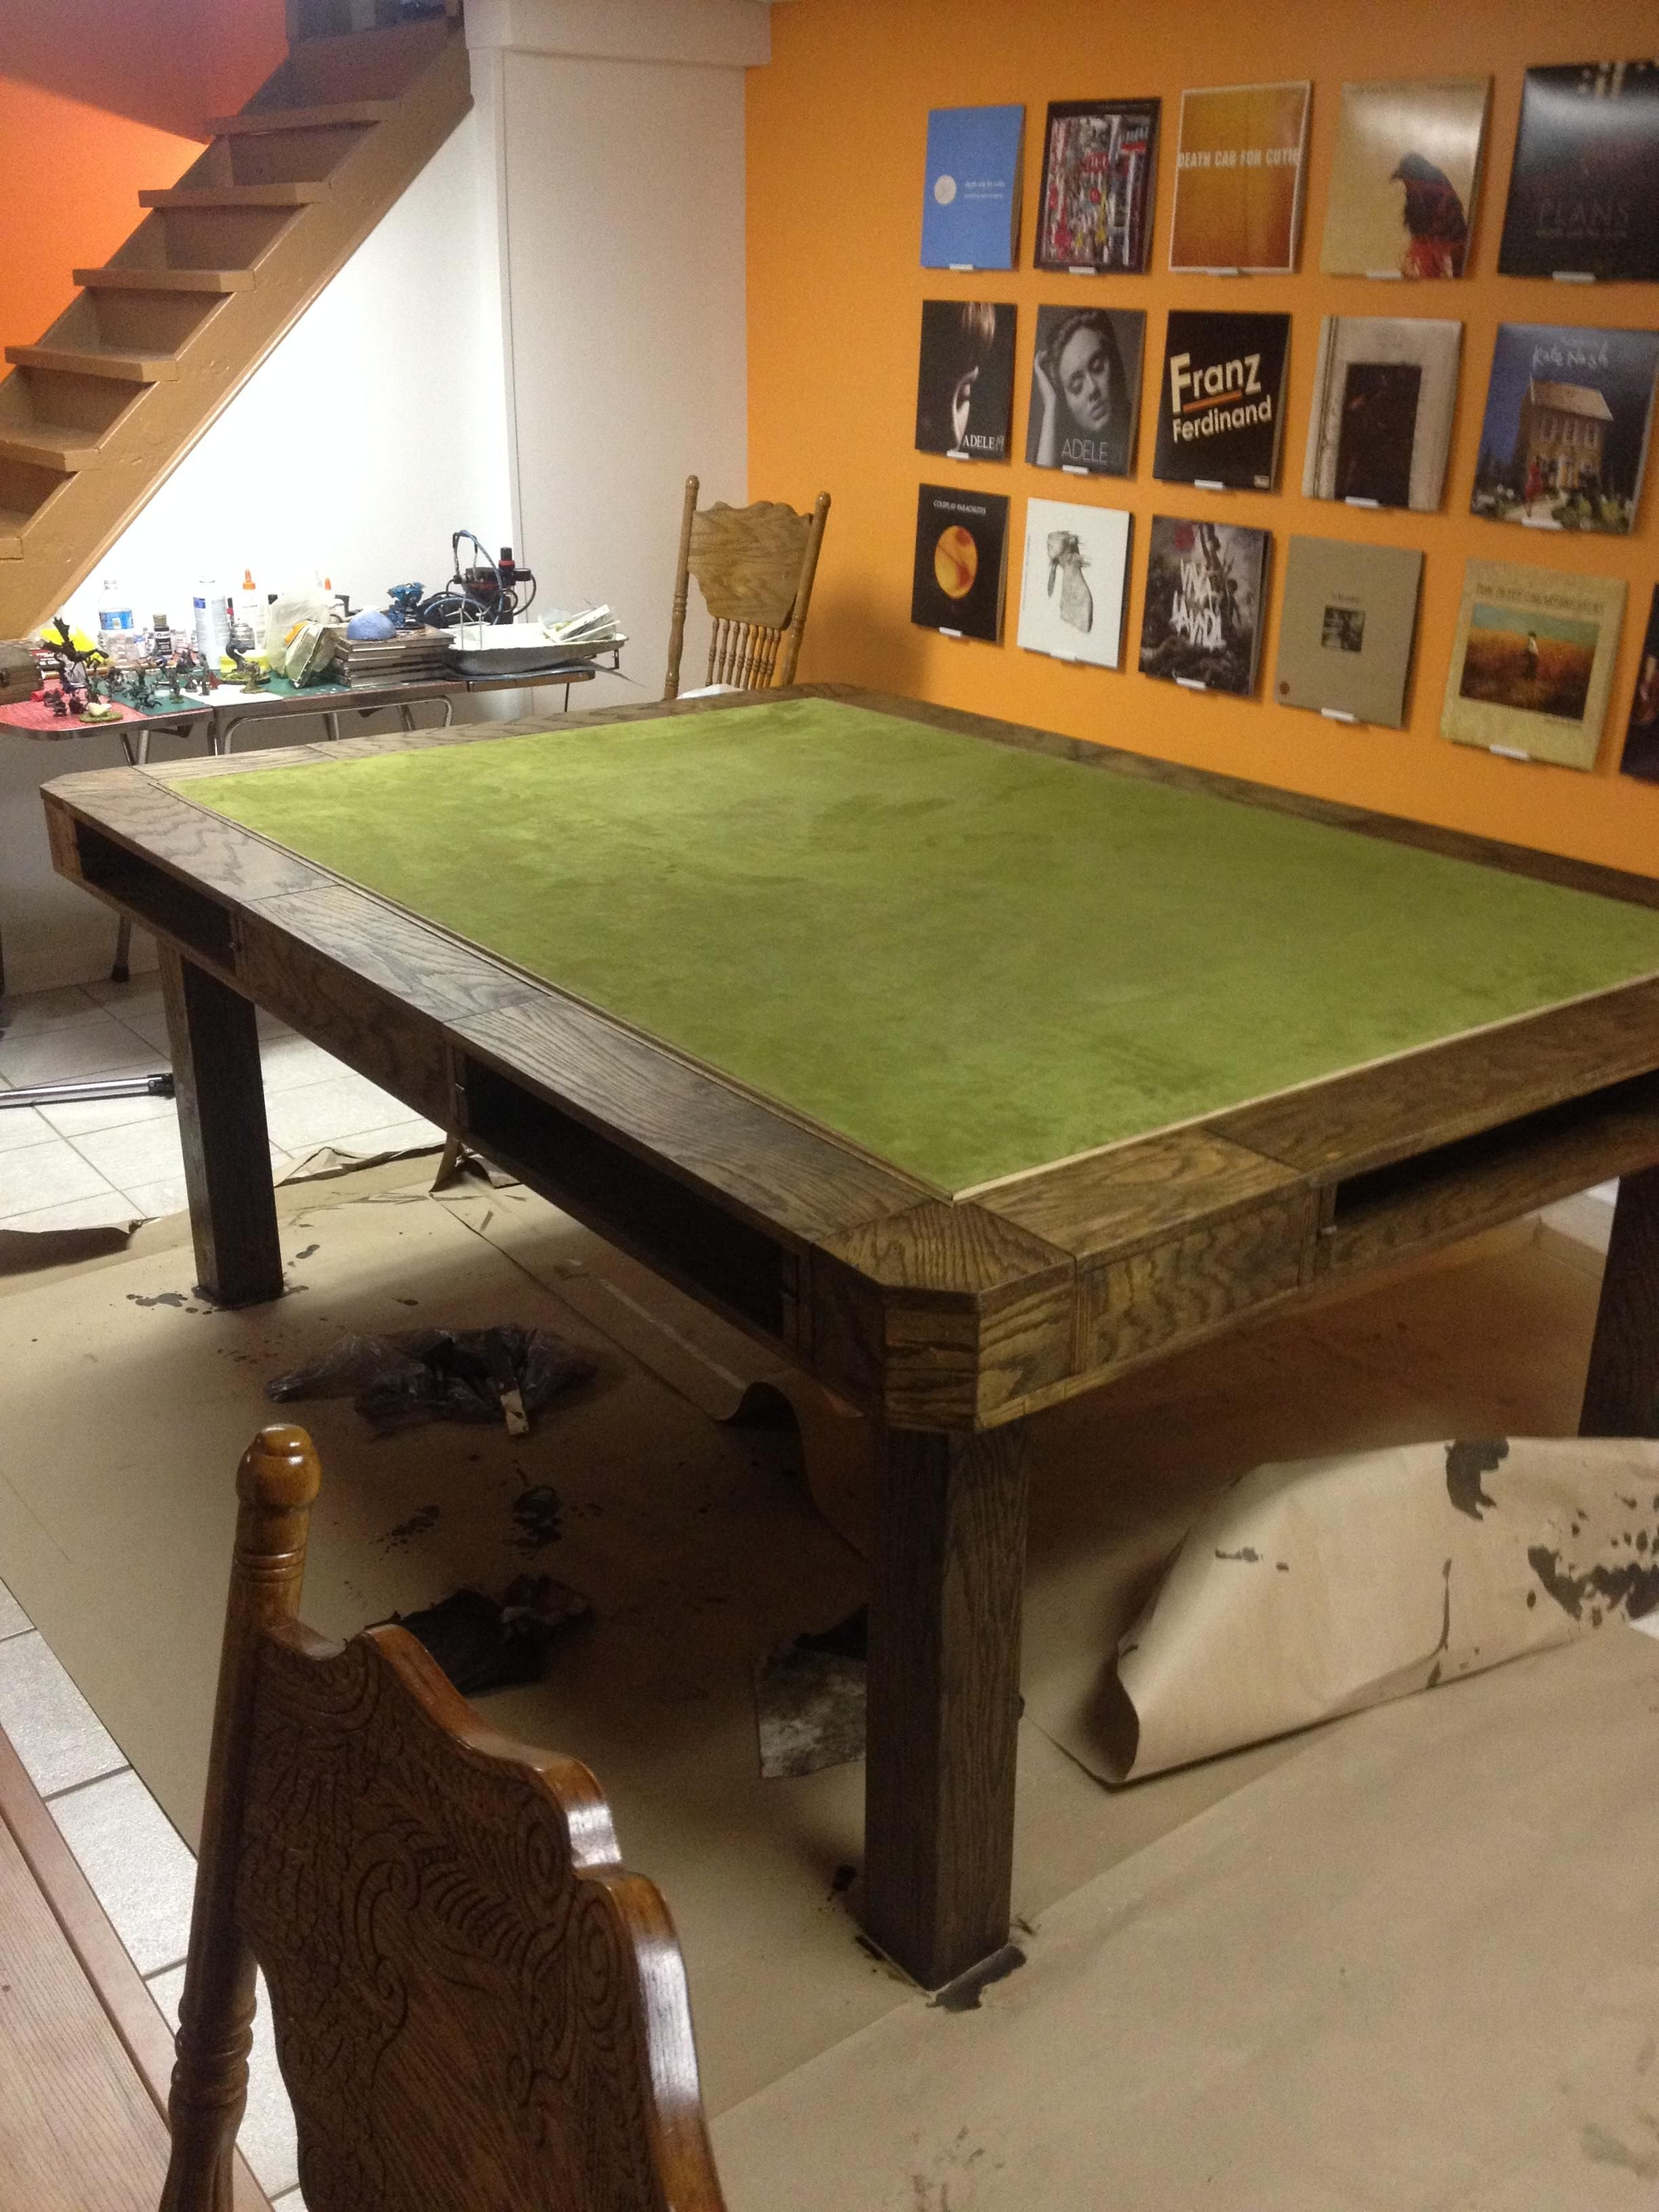 The Game Table Table Games Gaming Table Diy Table